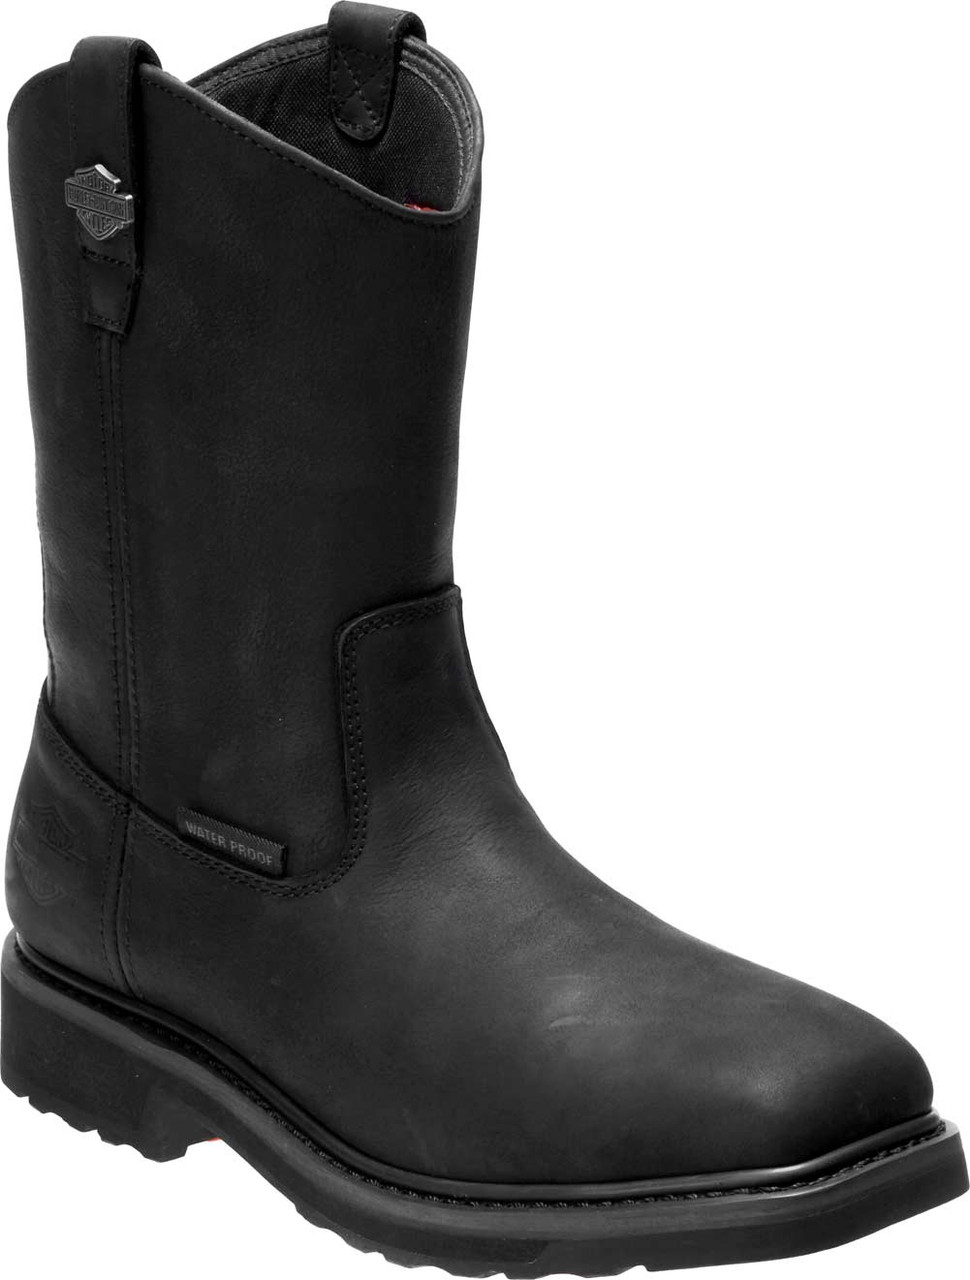 e835bf88337ca4 Harley-Davidson Men s Altman 10-In WP and CT Motorcycle Boots D93564 (Brn.  See 4 more pictures